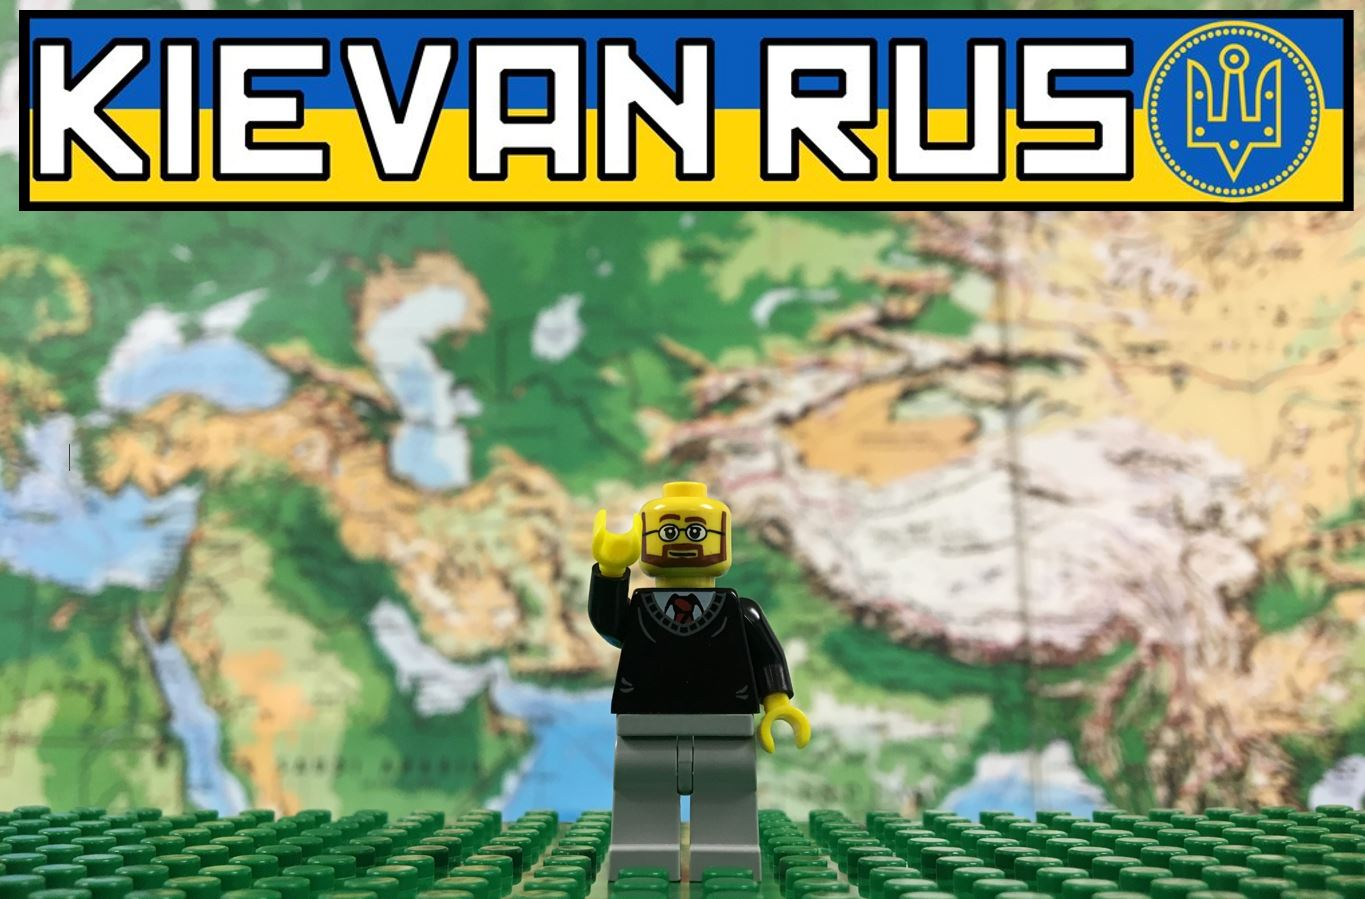 Russia's medieval roots emerged in the area known as Kievan Rus after the Eastern Slavs settled in the region. Along the Dnieper River, Kievan Rus developed the culture and society that would serve as the basis for future Russian civilizations. Below are some LEGO recreation of the most important parts. Consider this our 21st Century attempt to relive the  Primary Chronicle . Our Russian History students have become a modern-day version of  Nestor the Chronicler . Find their work below…